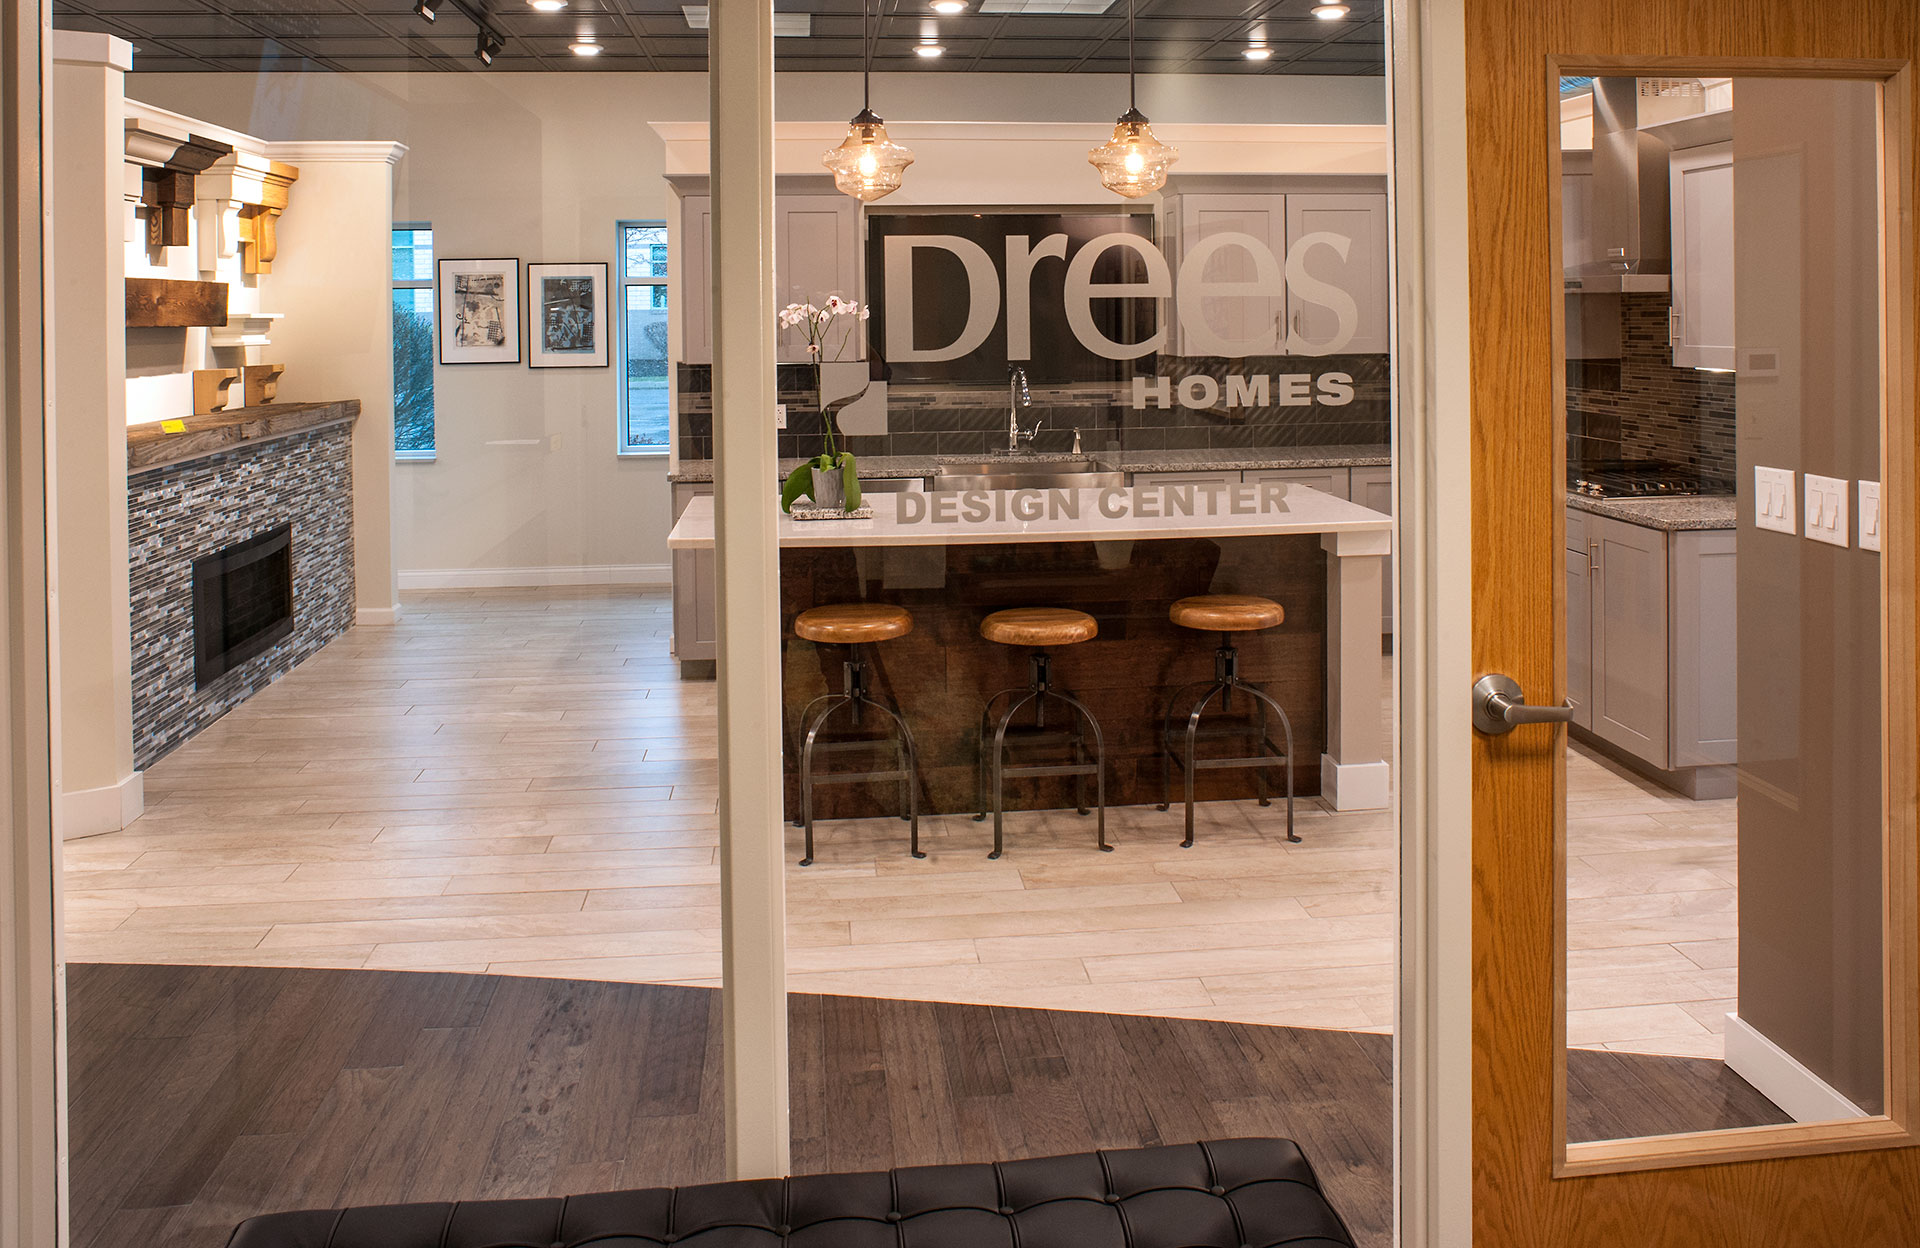 Whether Your Style Is Classic Or Quirky, Refined Or Casual, Drees Has  Something For You. The Designers At The Drees Homes Design Center In  Brecksville Will ...